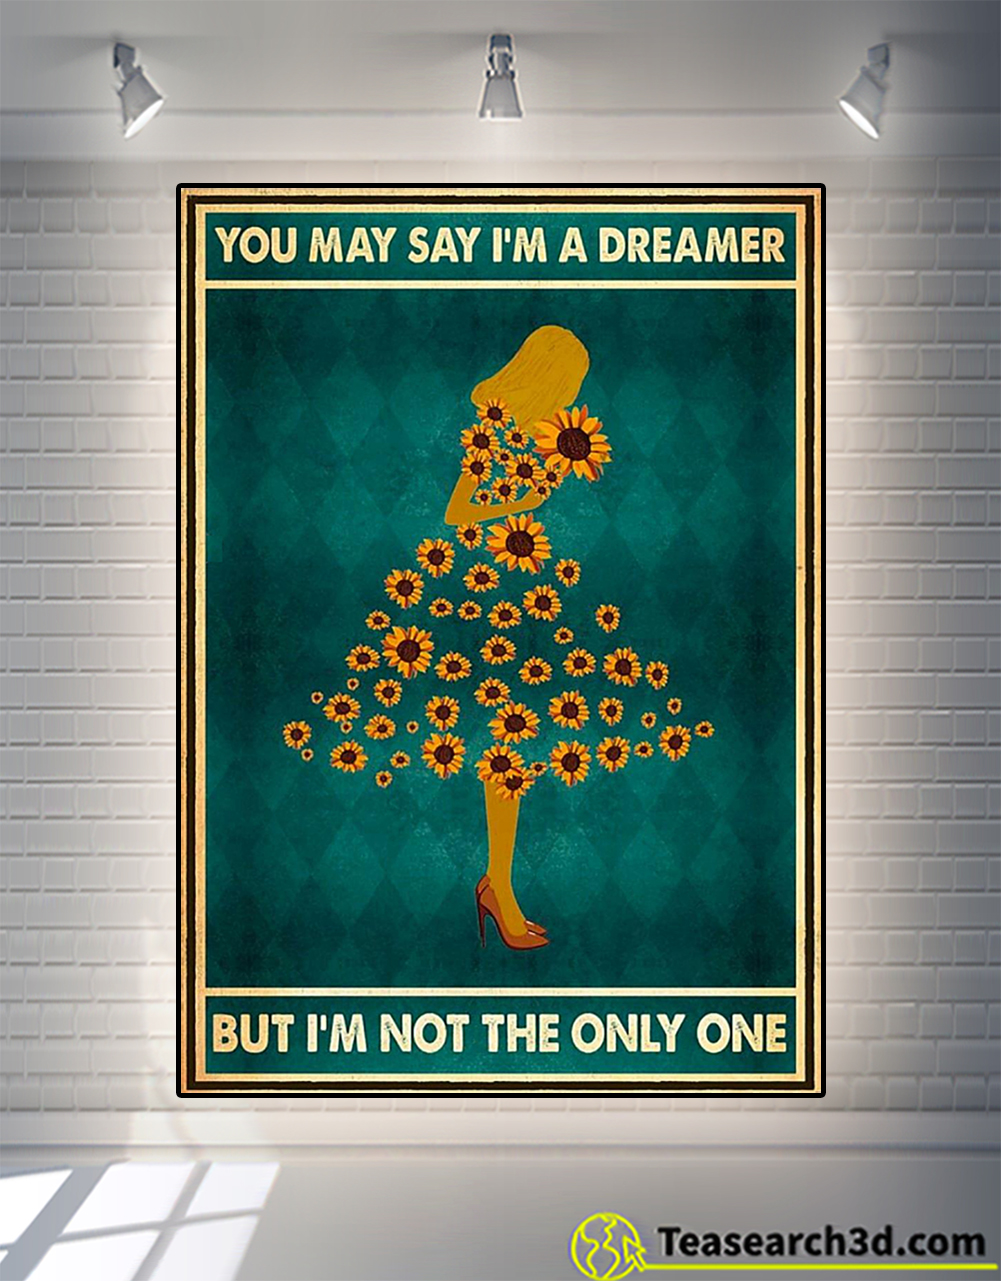 Sunflowe girl you may say I'm a dreamer but I'm not the only one poster